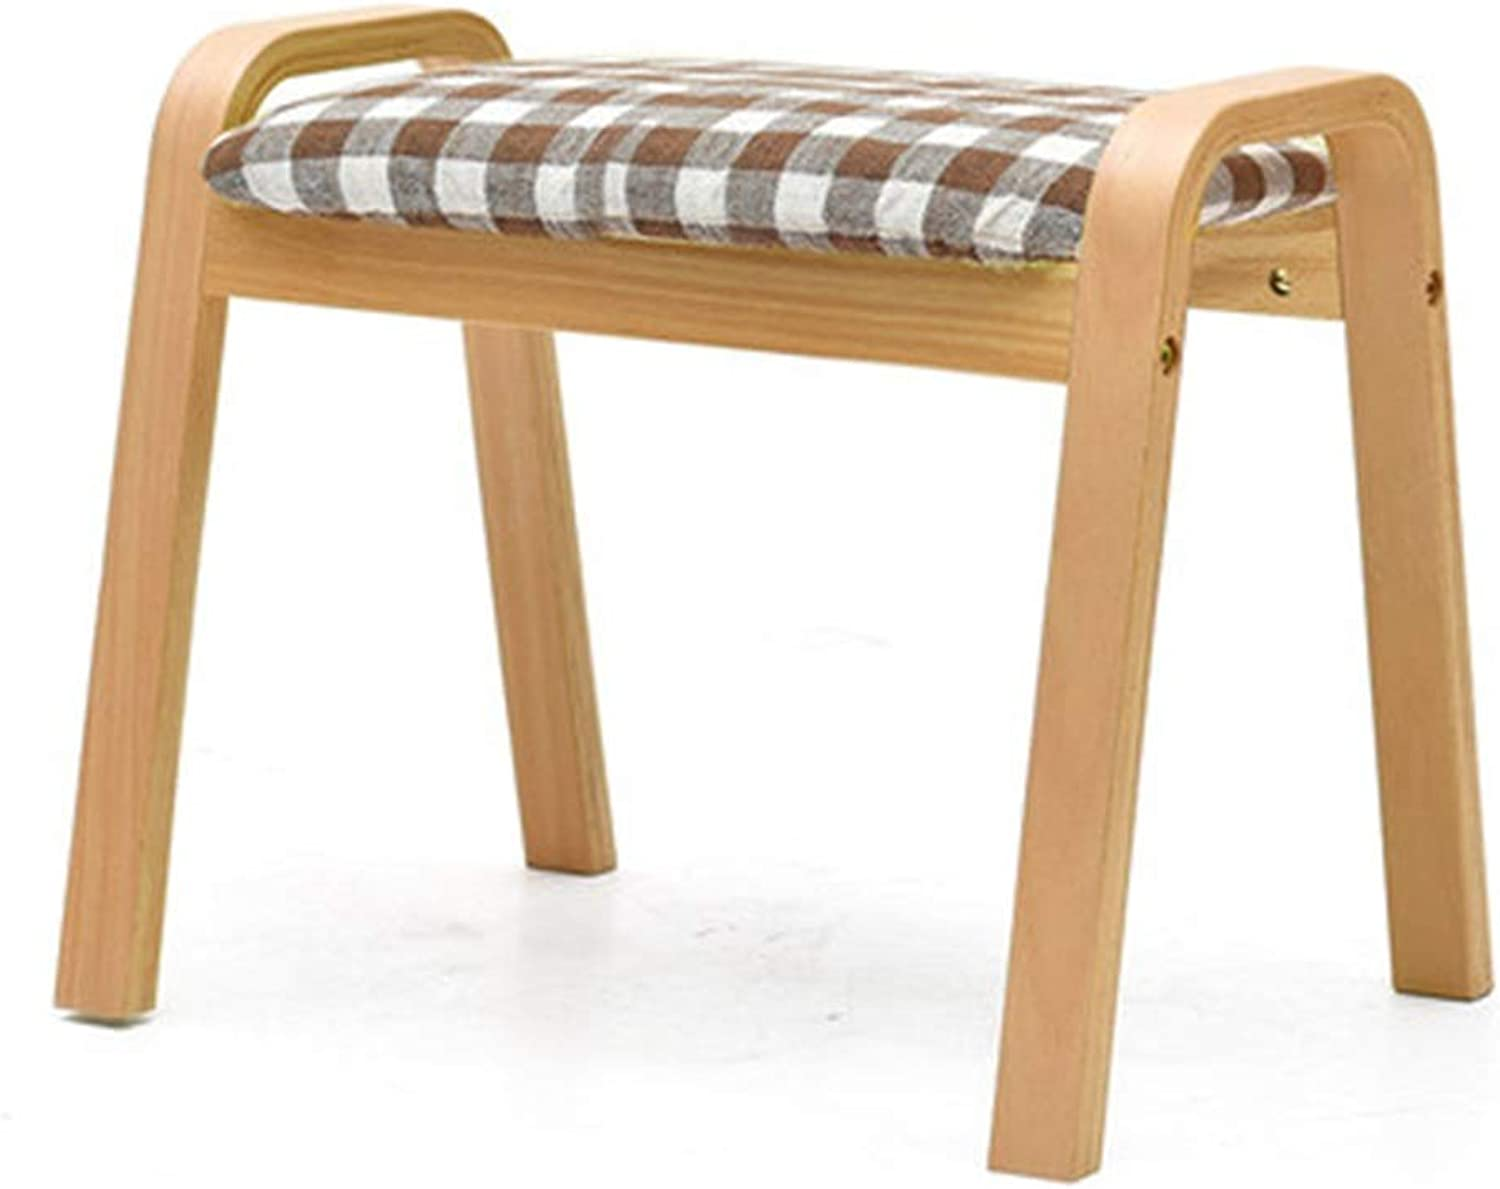 Stools- Wooden Bench- Home Stool Fashion Creative Stool Living Room Solid Wood Bench Fabric Stool Sofa Change shoes Bench HATHOR-23 (color   D, Size   Log color Stool Legs)